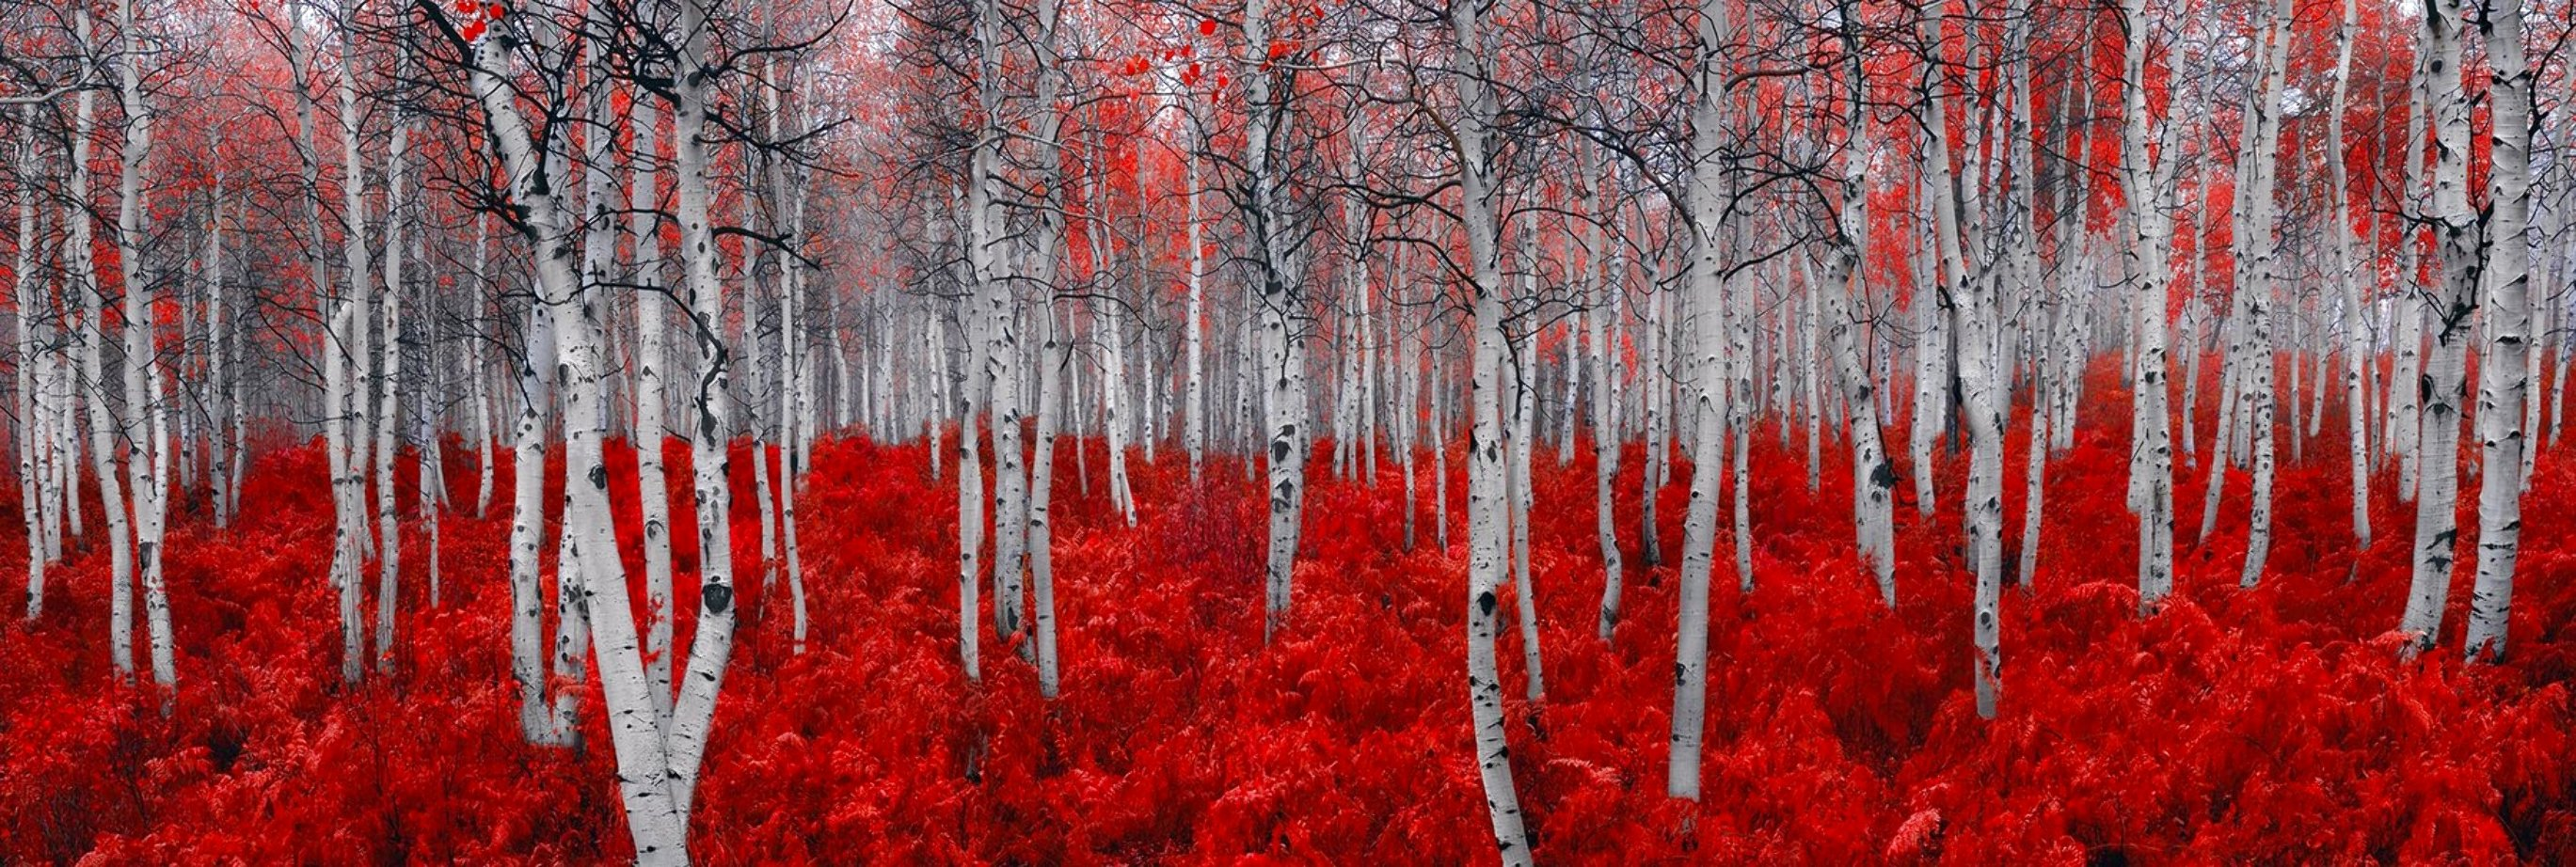 Rouge 1,5M Huge Panorama by Peter Lik